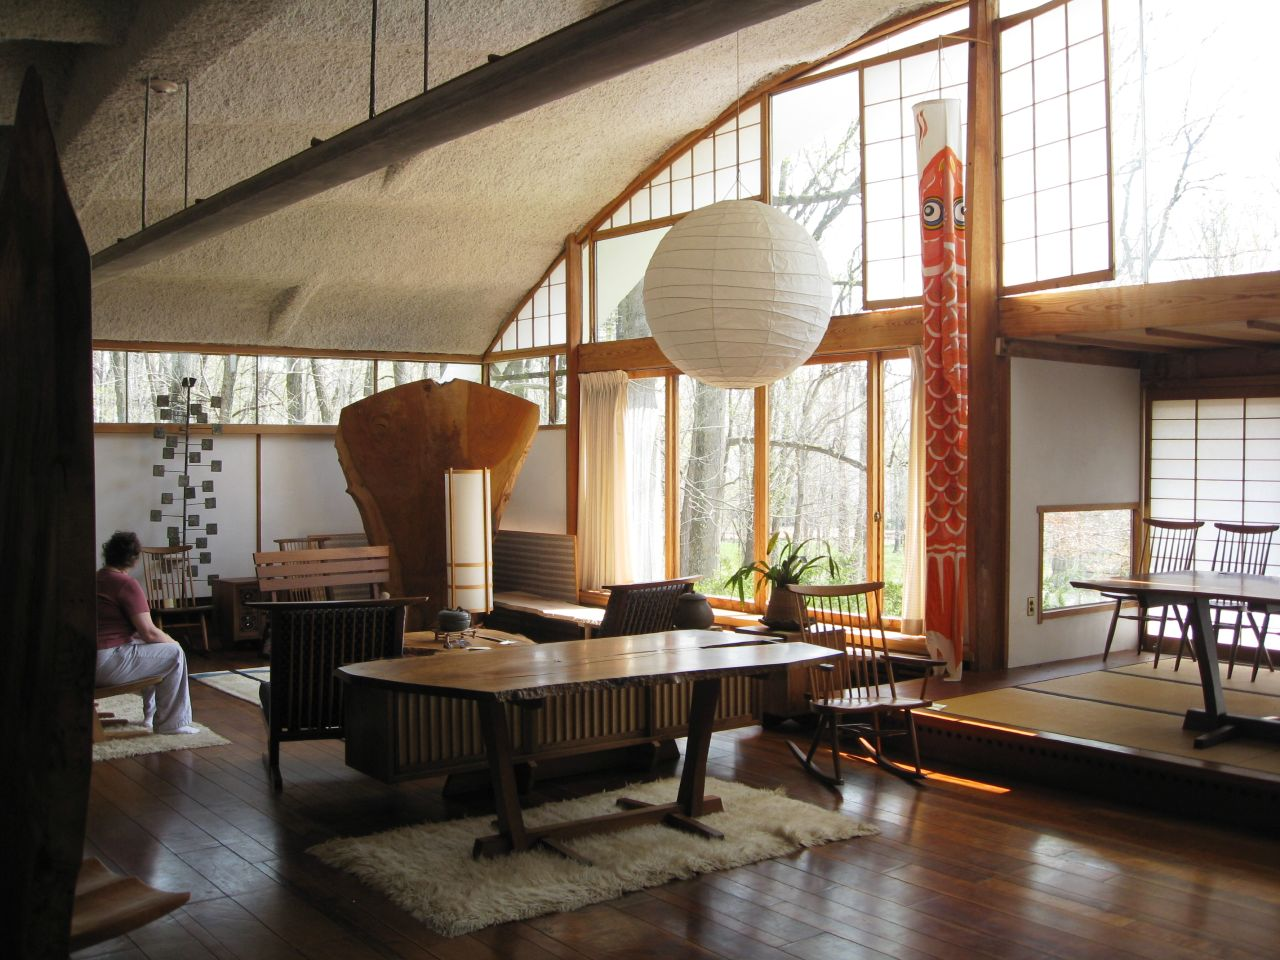 The North Elevation Classic Spaces George Nakashima